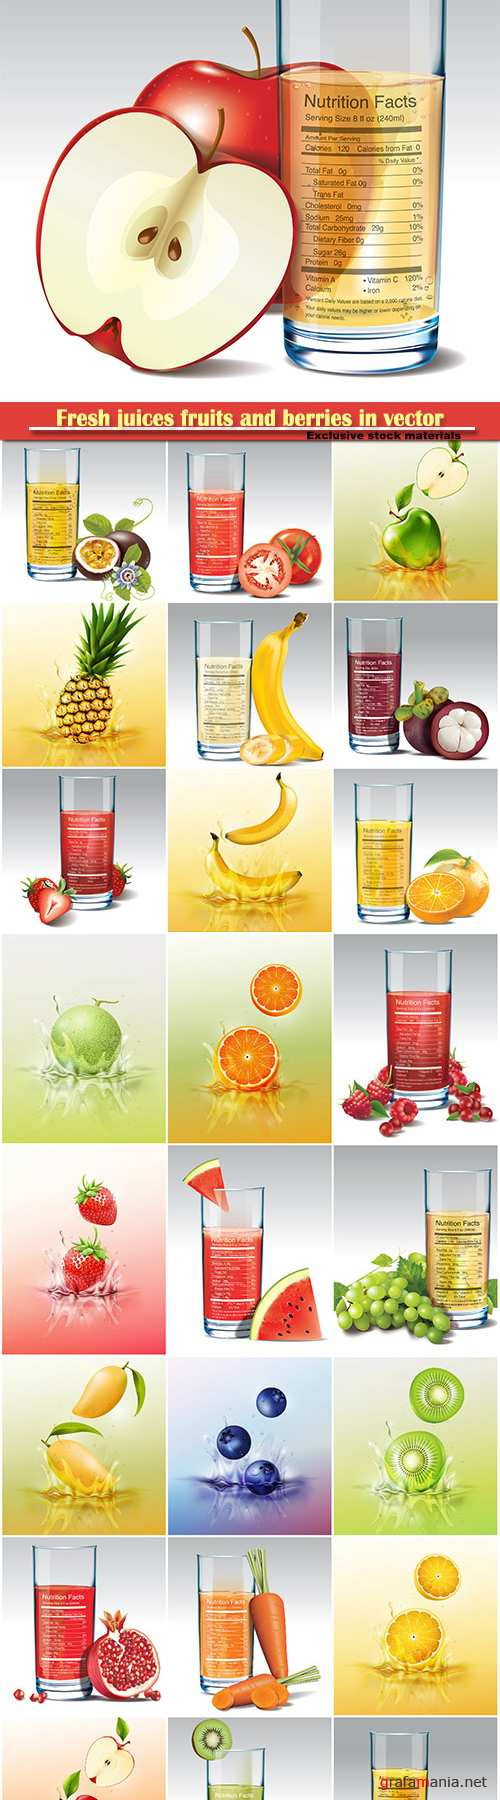 Fresh juices fruits and berries in vector